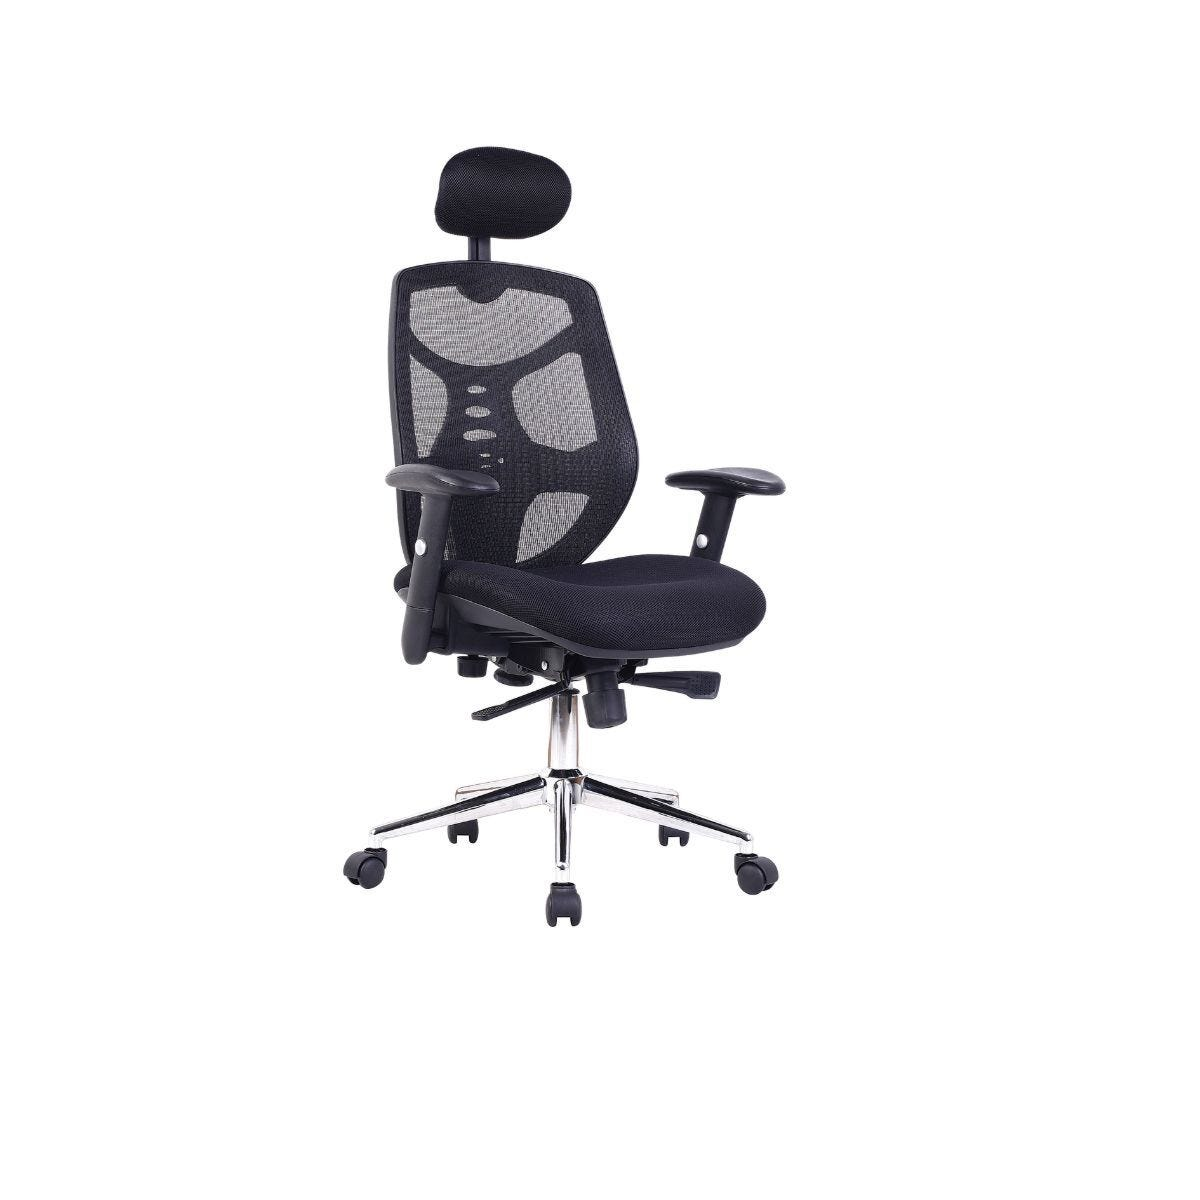 Mesh Back Chair with Adjustable Headrest